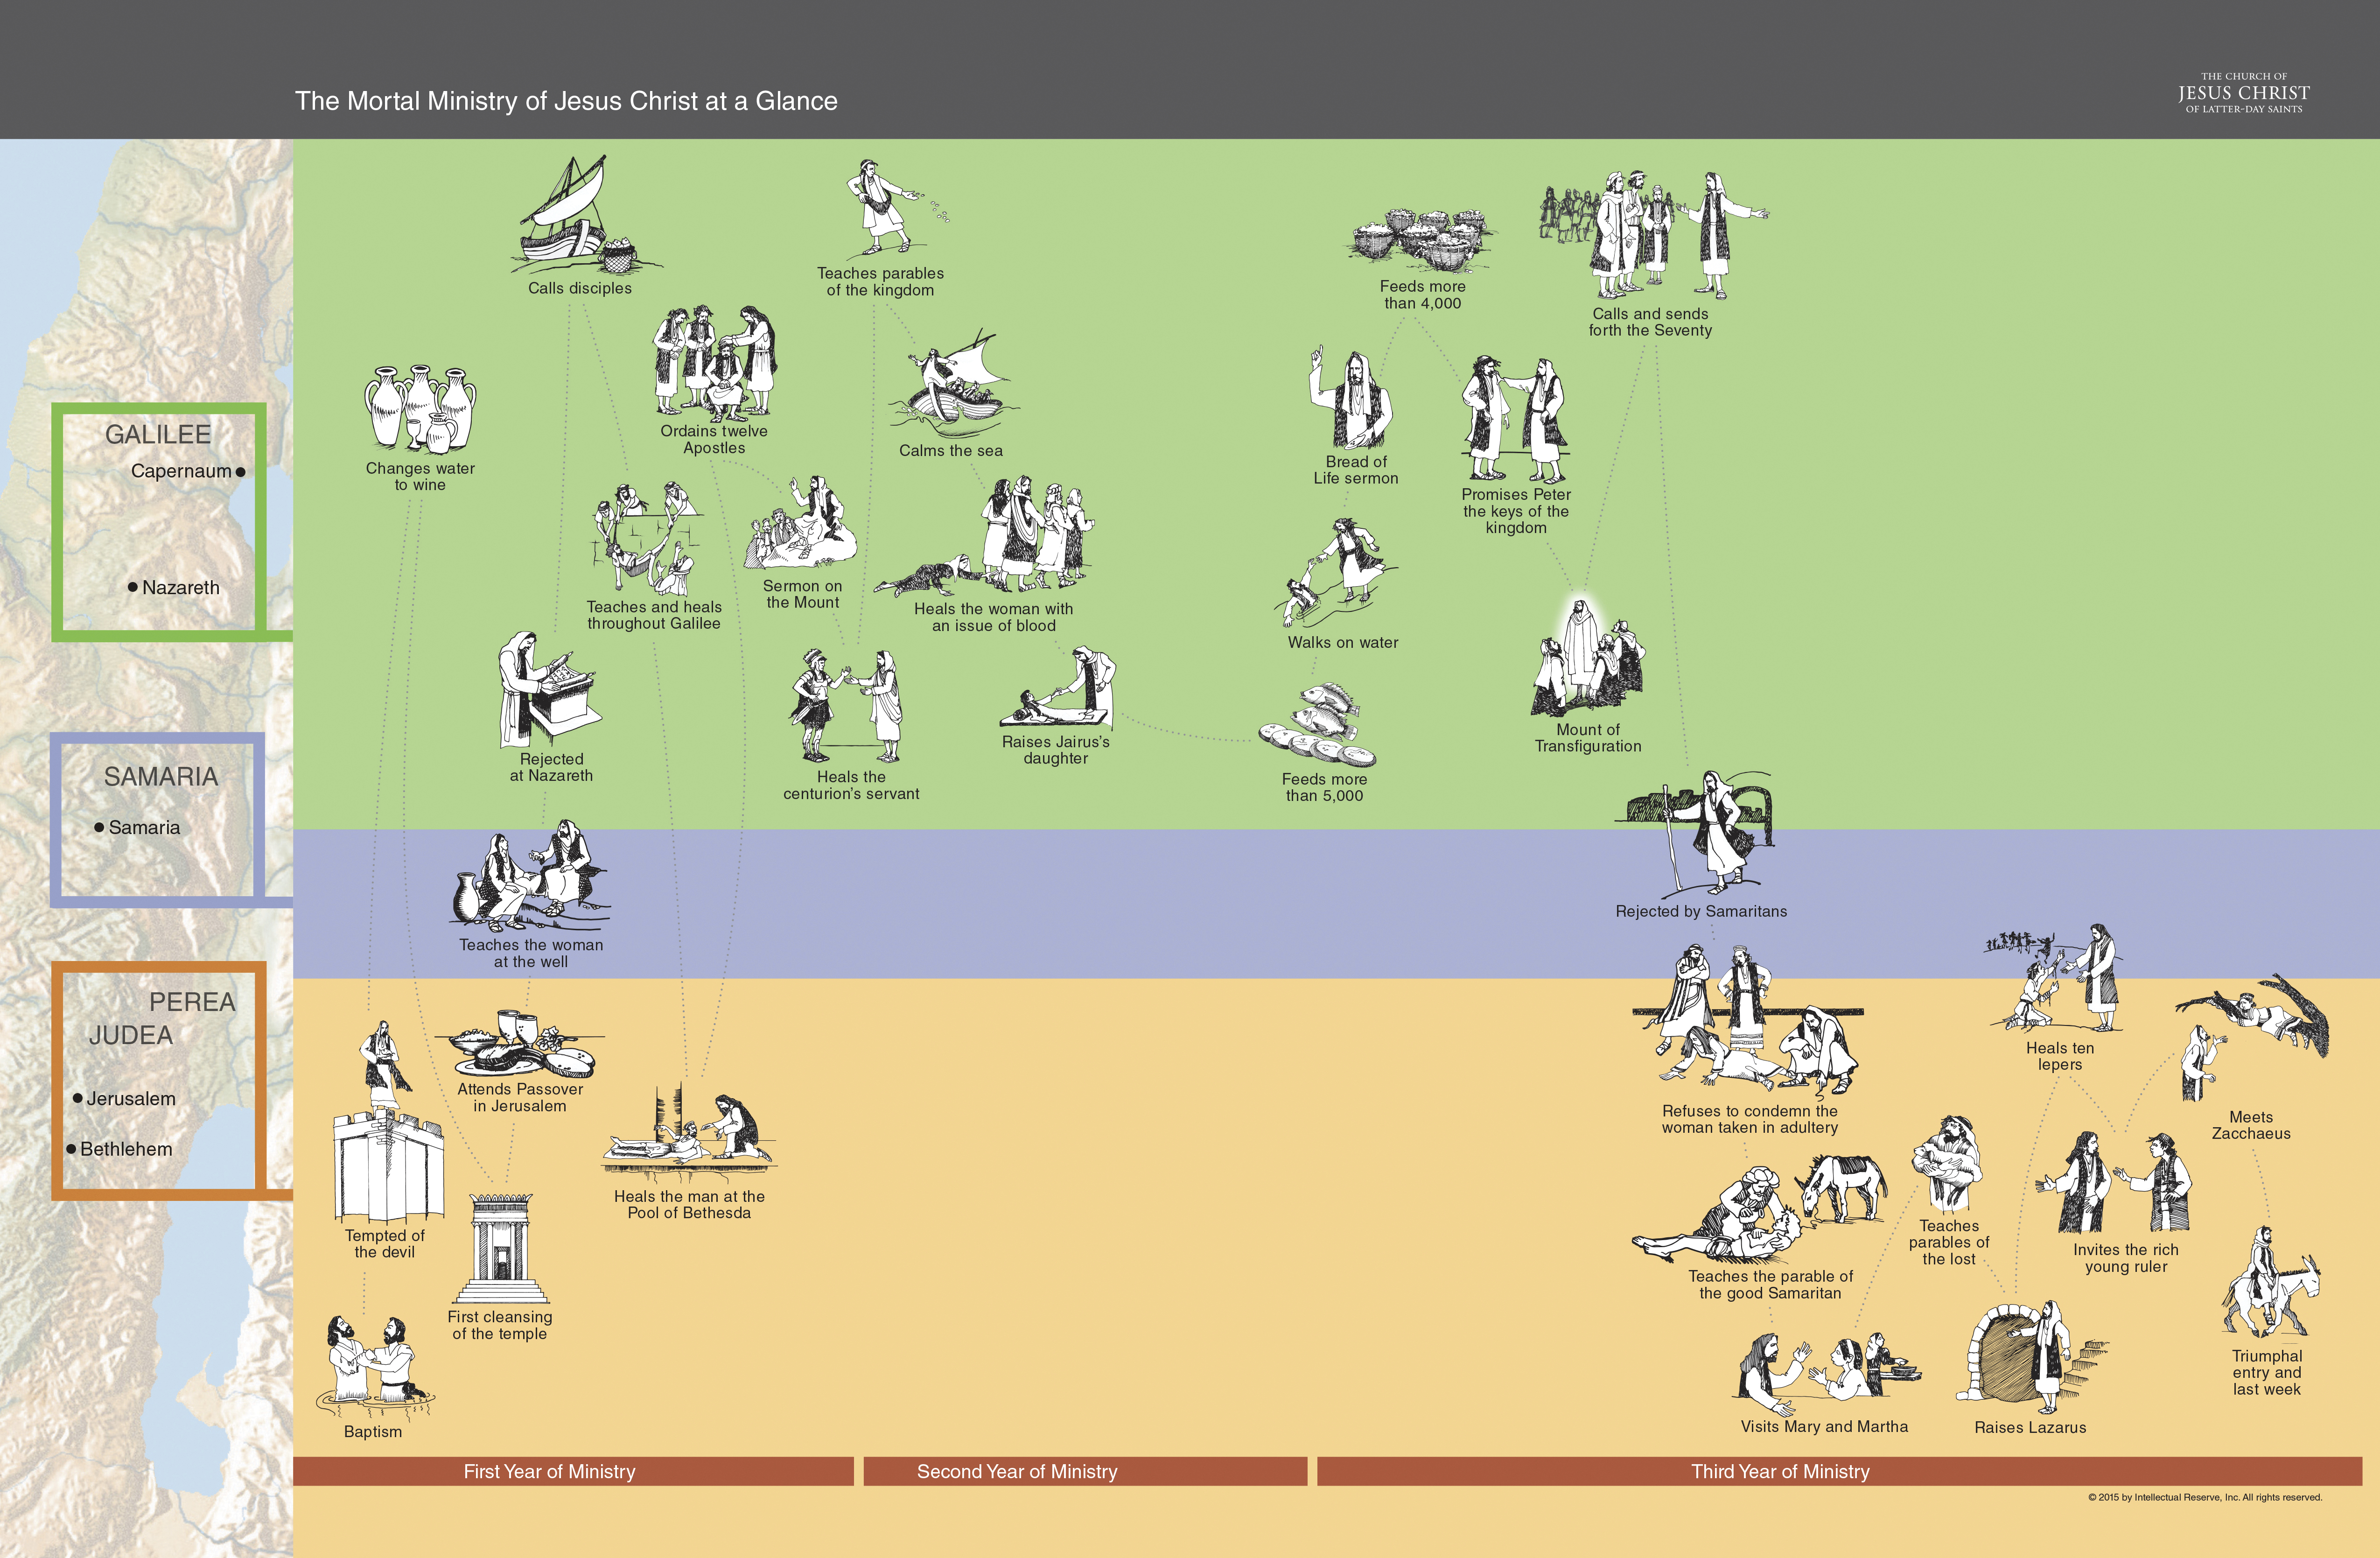 This diagram provides an at-a-glance overview of Jesus Christ's mortal ministry.